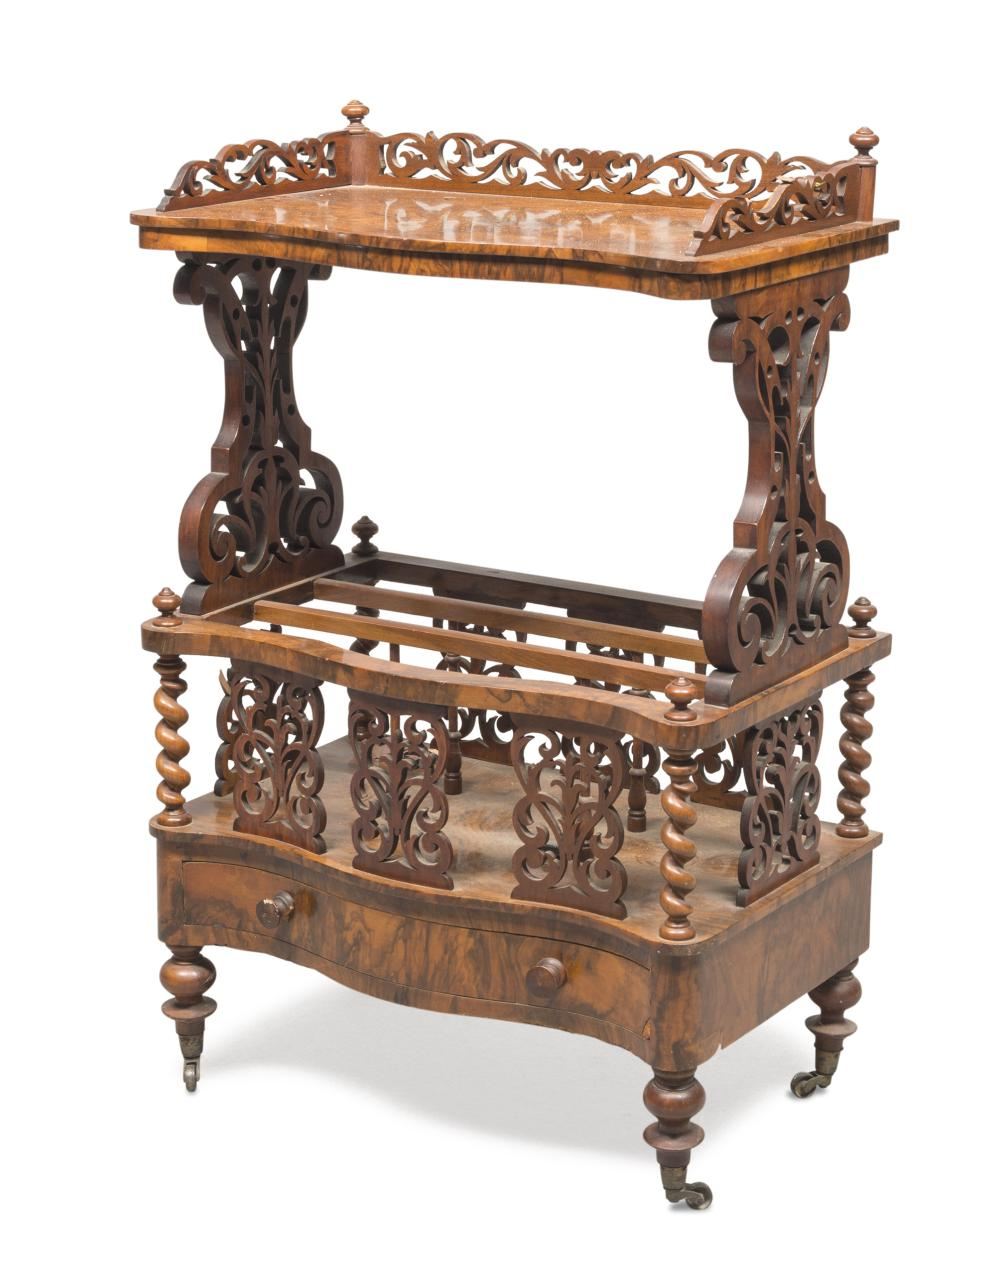 Lot 485: ETAGERE, ENGLAND EDWARDIAN PERIOD